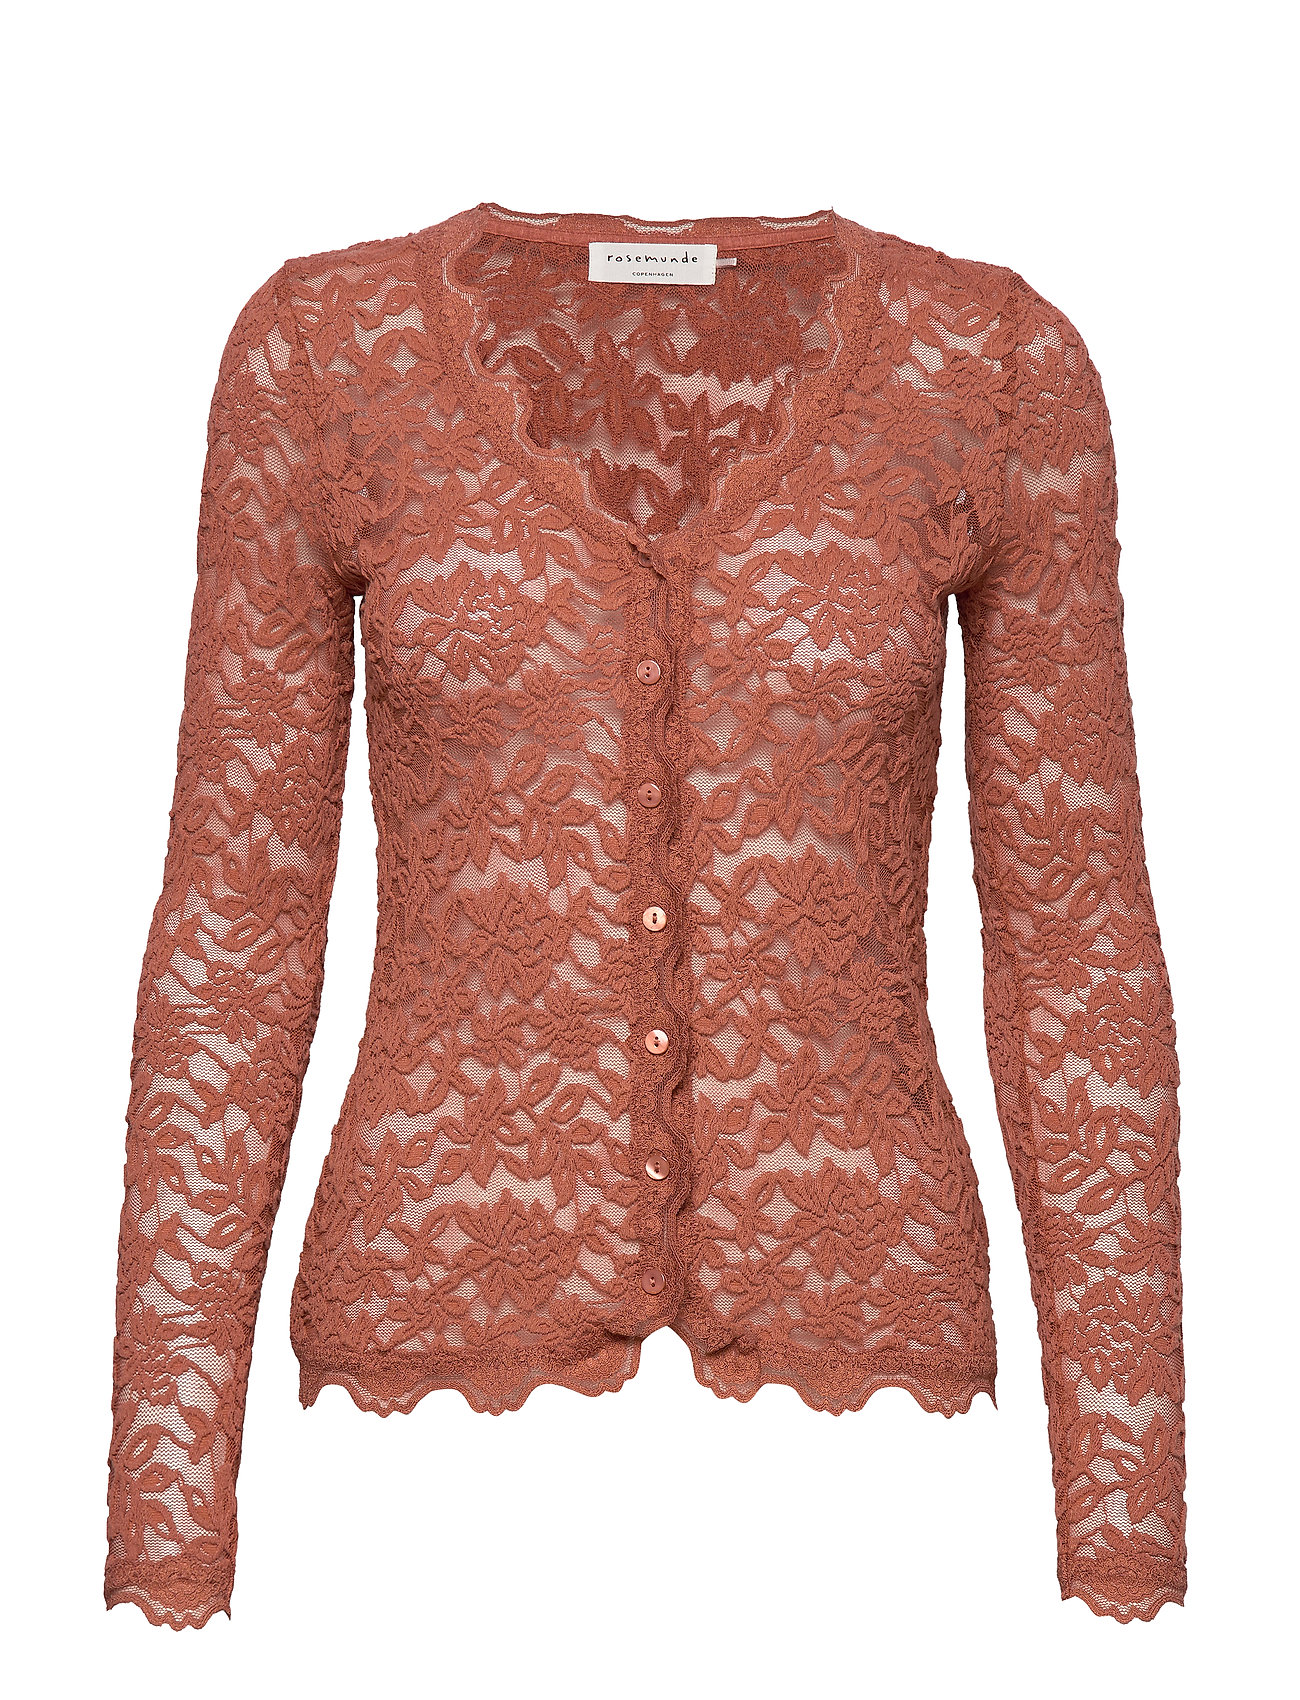 Rosemunde Cardigan ls - COPPER BROWN